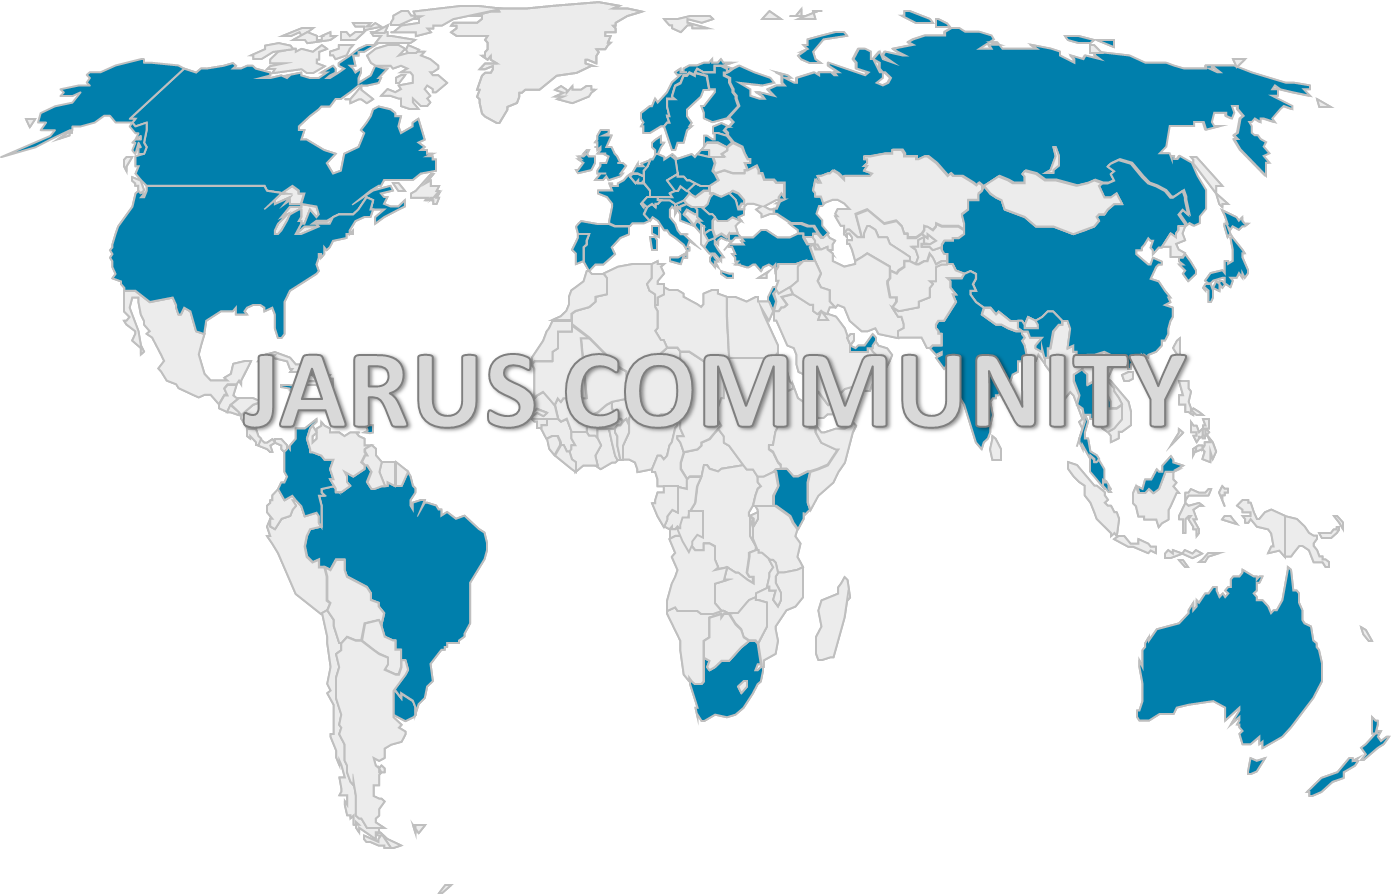 picture_all_jarus_members_website_04122017.png